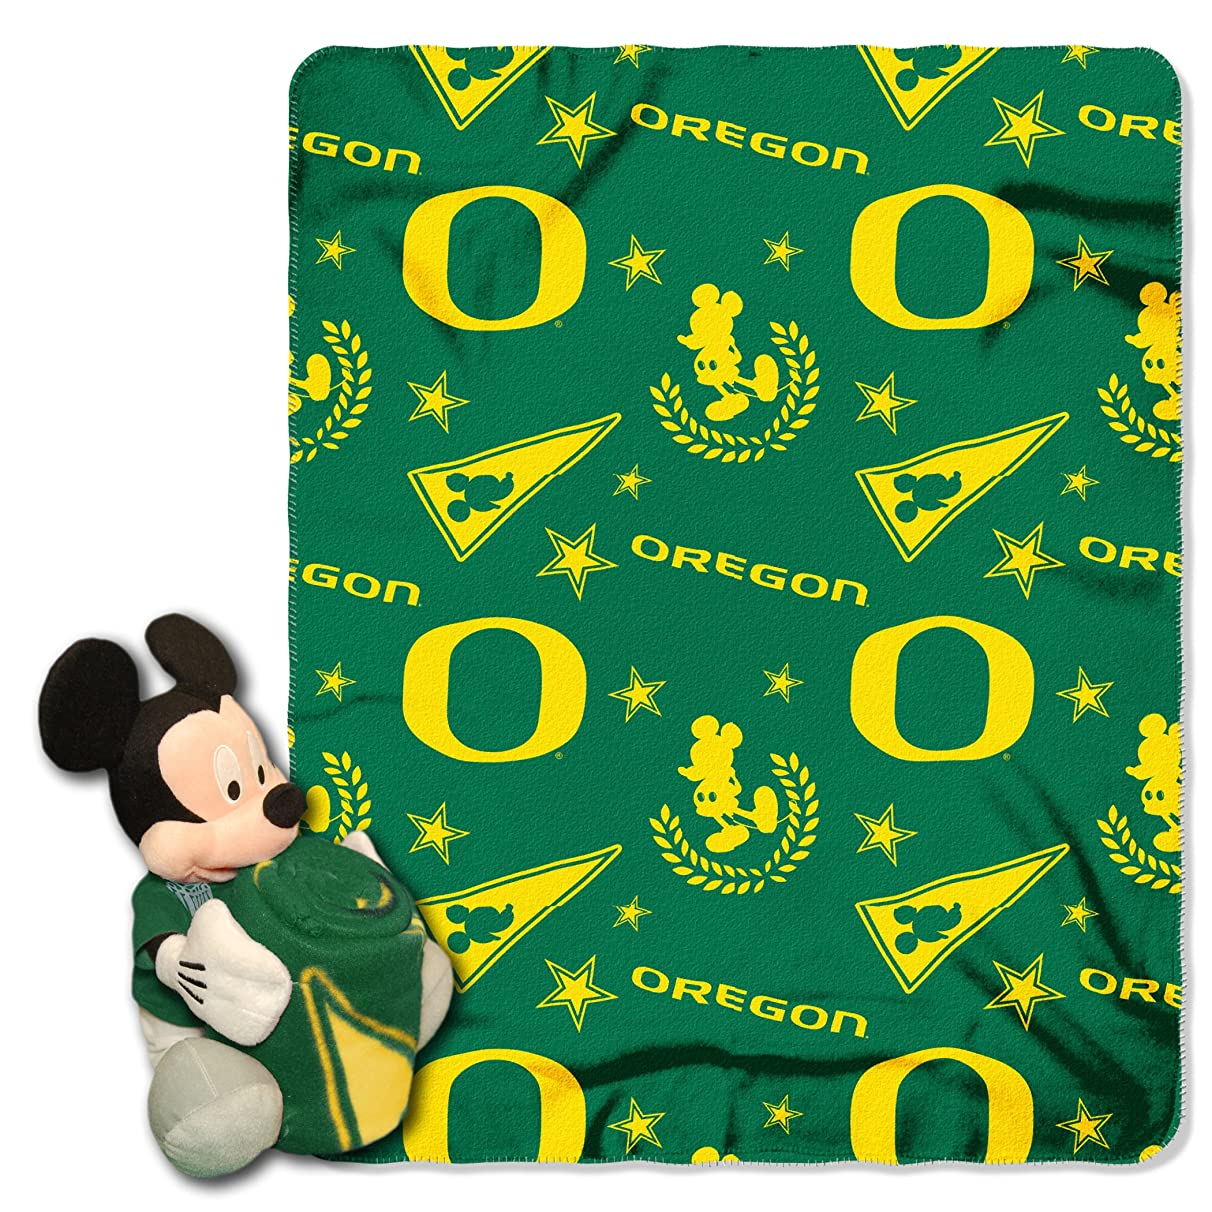 The Northwest Company Officially Licensed NCAA Co Disney's Mickey Character Pillow and Fleece Throw Blanket Set